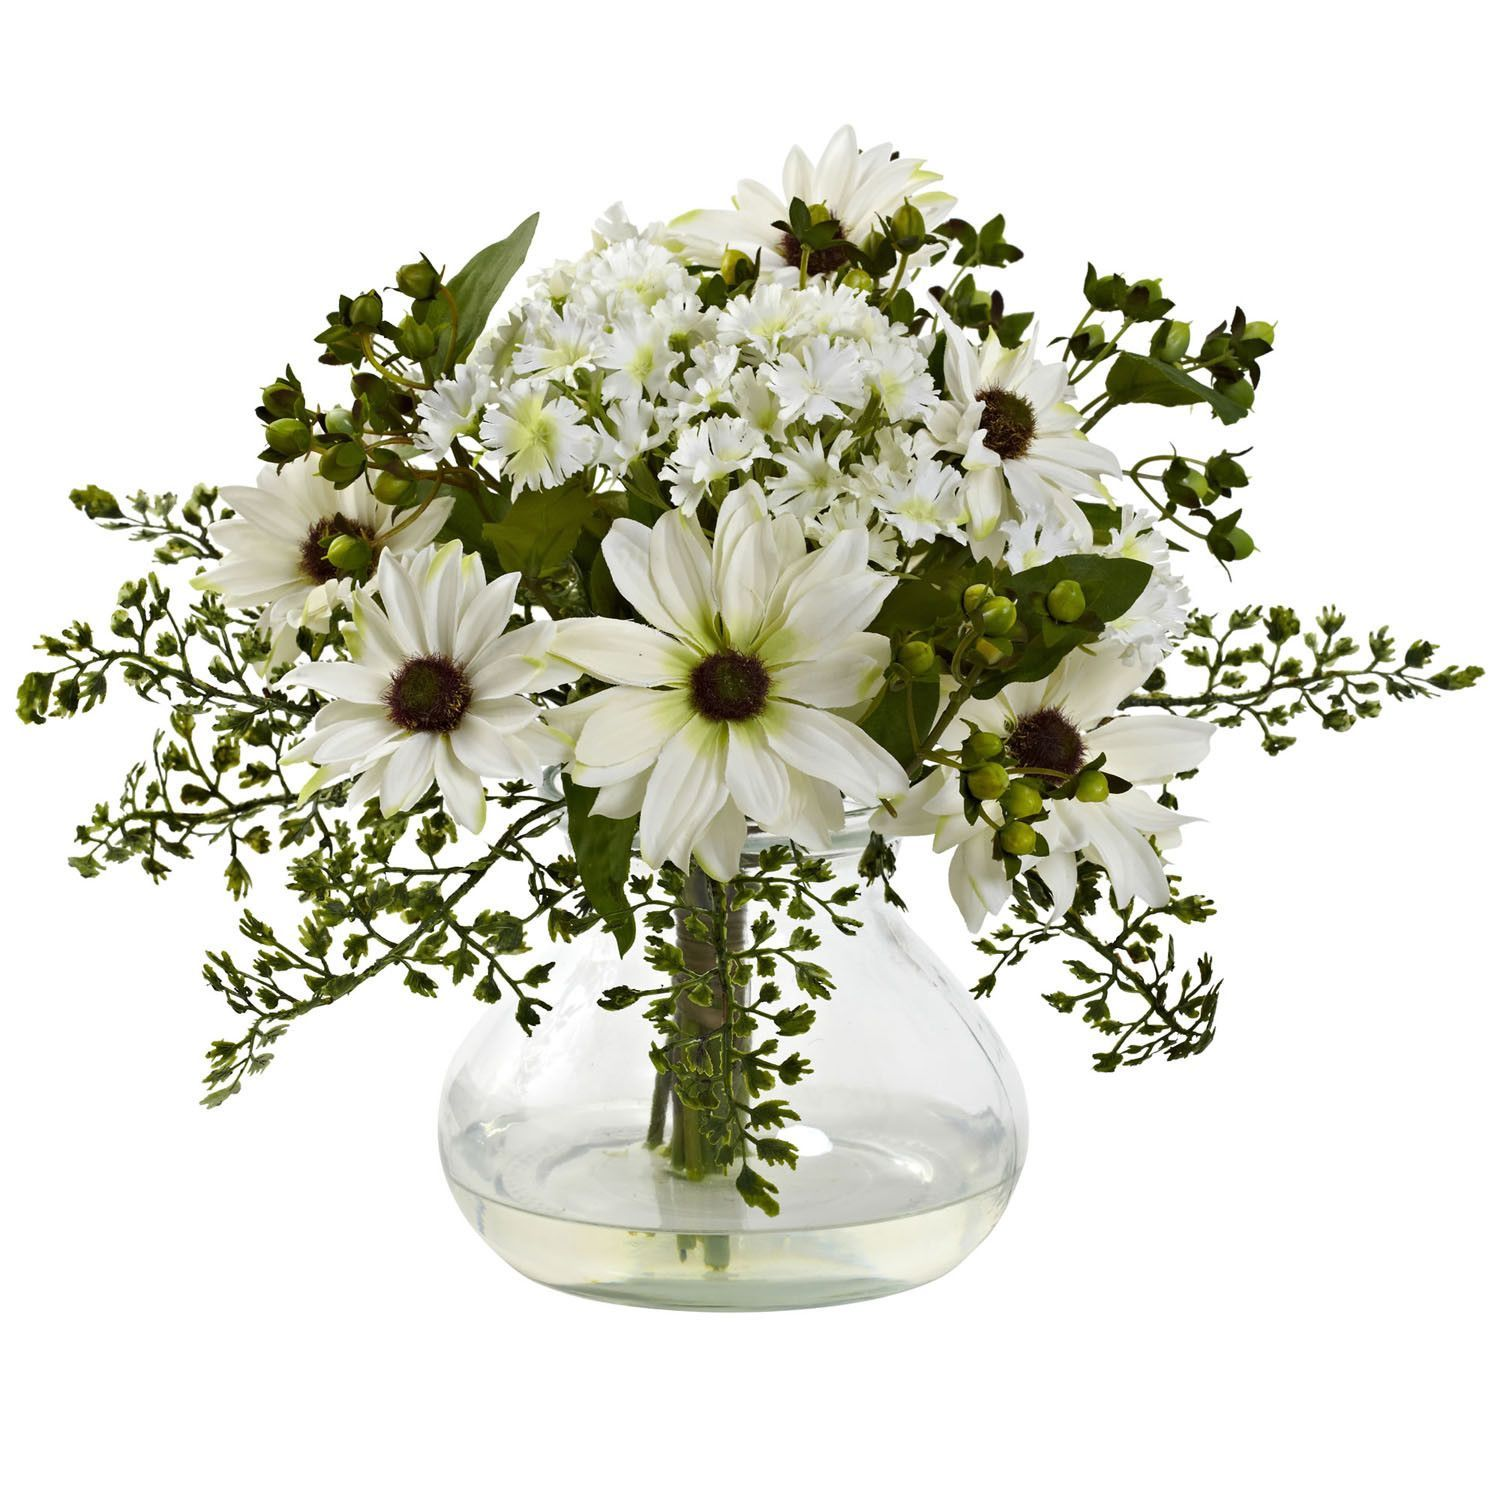 Description specifications a classic arrangement of daisy flowers description specifications a classic arrangement of daisy flowers arranged in beautiful vase filled with liquid illusion faux water izmirmasajfo